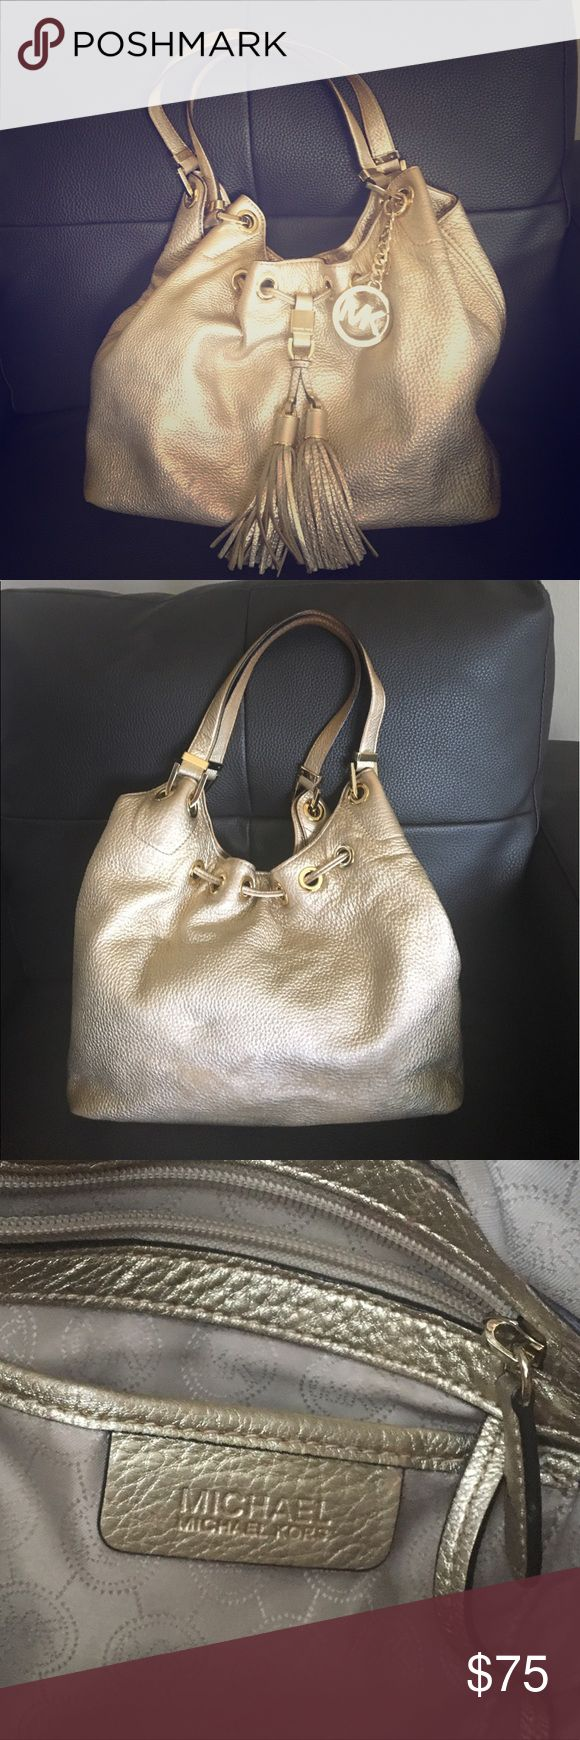 Michael Kors Middleton Gold Hobo purse Authentic Michael Kors drawstring handbag. Metallic gold. Signature MK circle emblem on gold chain. Clean inside with interior zipper pocket and cell phone/multi-use compartments. Second lowest price can be found at $413 at House of Fraser. Non-odorous in non-smoking household. Gently used with minor scuffs on the bottom. Michael Kors Bags Hobos